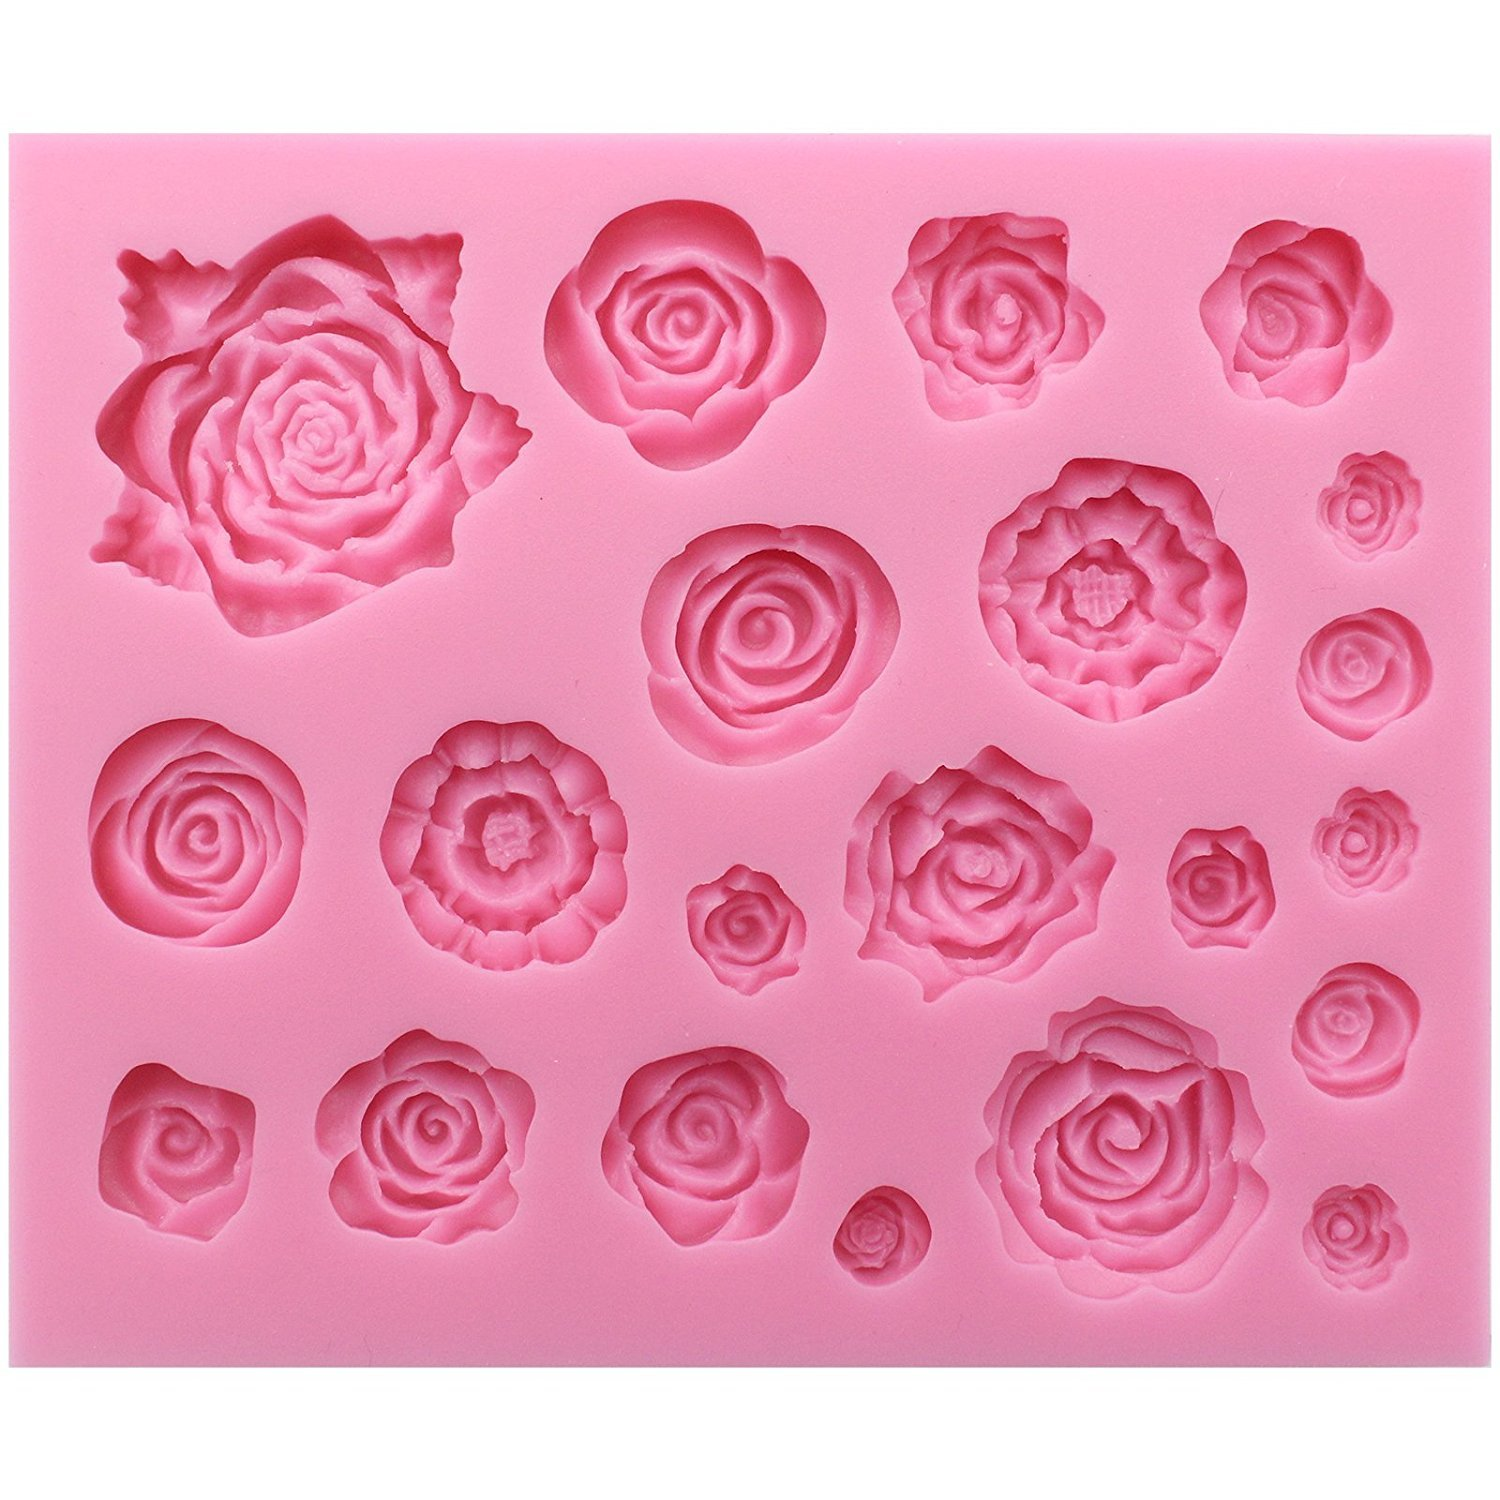 21-Cavity Rose Collection Fondant Candy Silicone Mold for Sugarcraft Cake Decoration, Cupcake Topper, Polymer Clay, Soap Wax Making Crafting Projects Kootips-1-4293